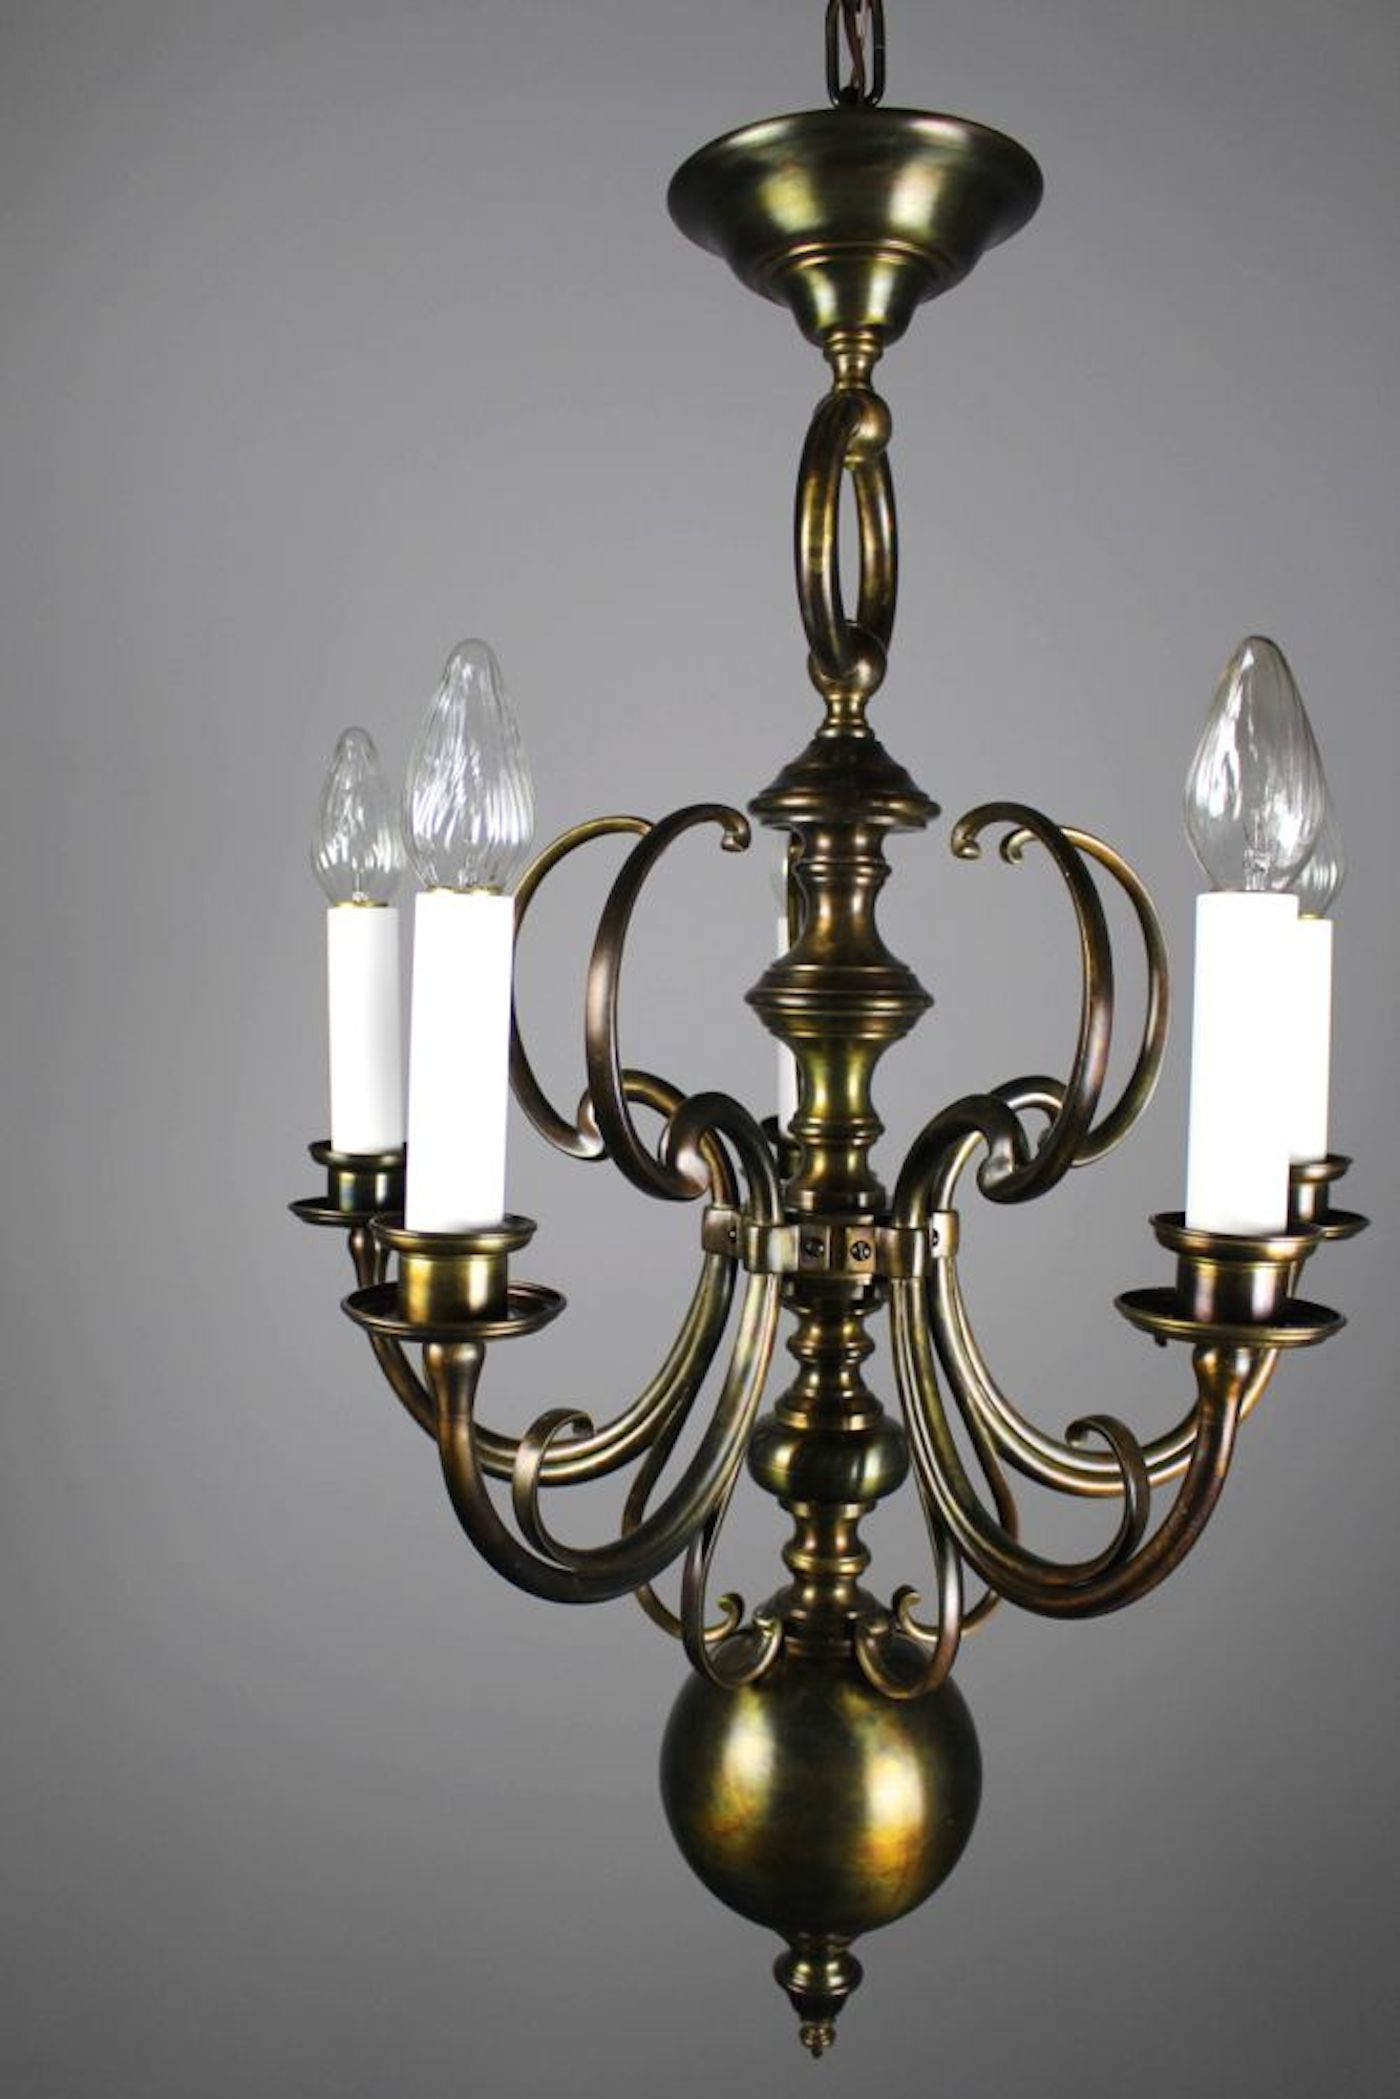 Unusual Art Nouveau Fixture 5 Light